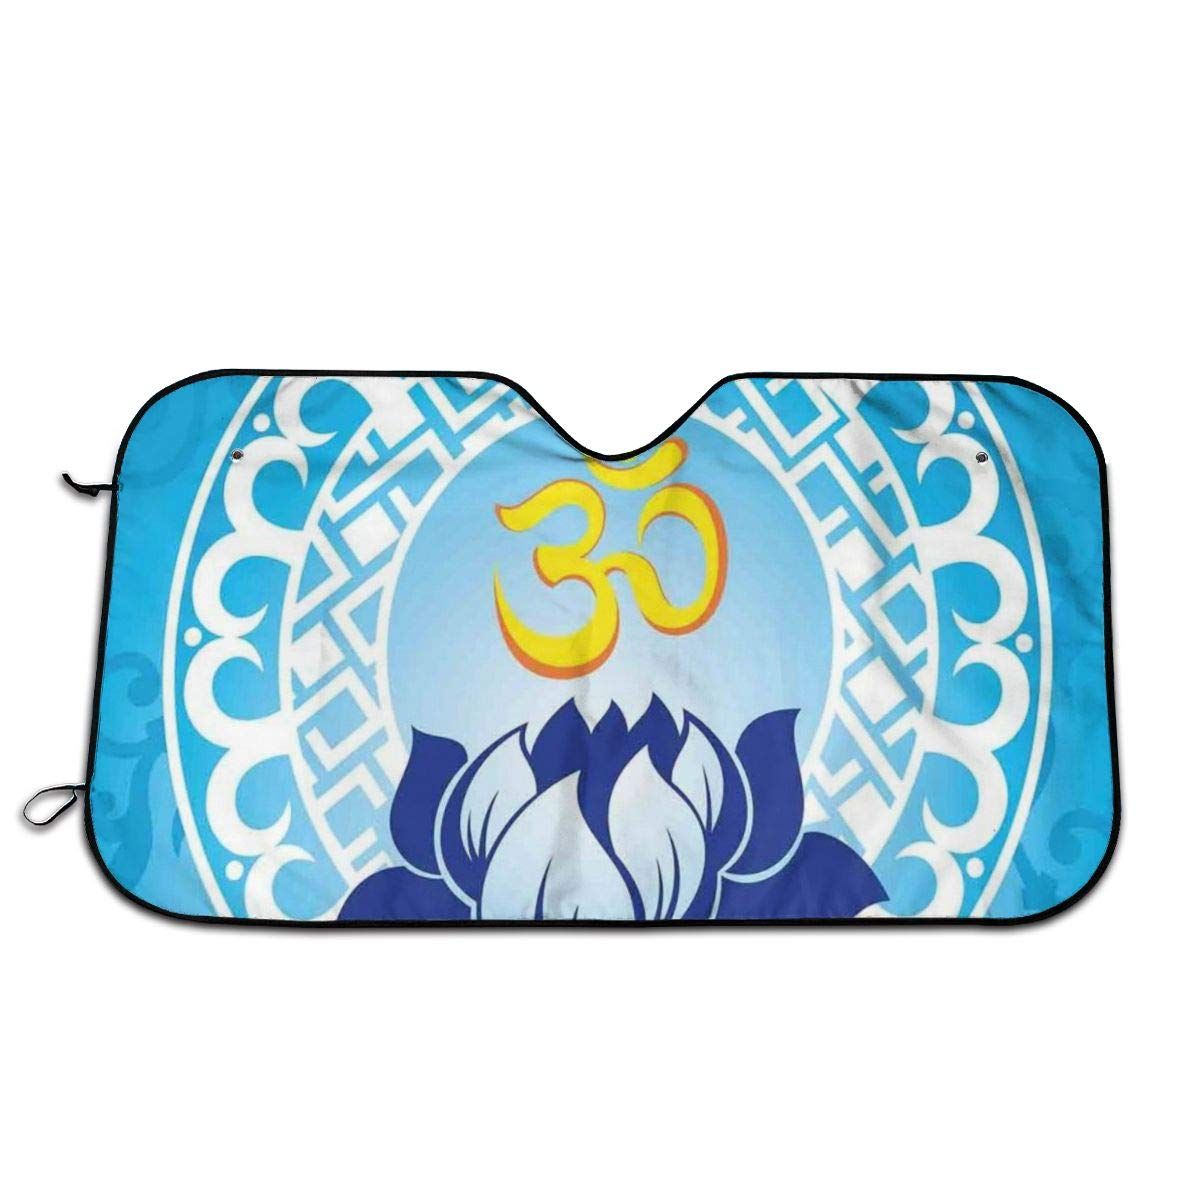 Windshield Sunshade for Car,Eastern Spiritual Design with Lotus Flower Petal Mystical Powers of Nature Print,Front Window Sun Shade Visor Shield Cover(27.5 x 51)